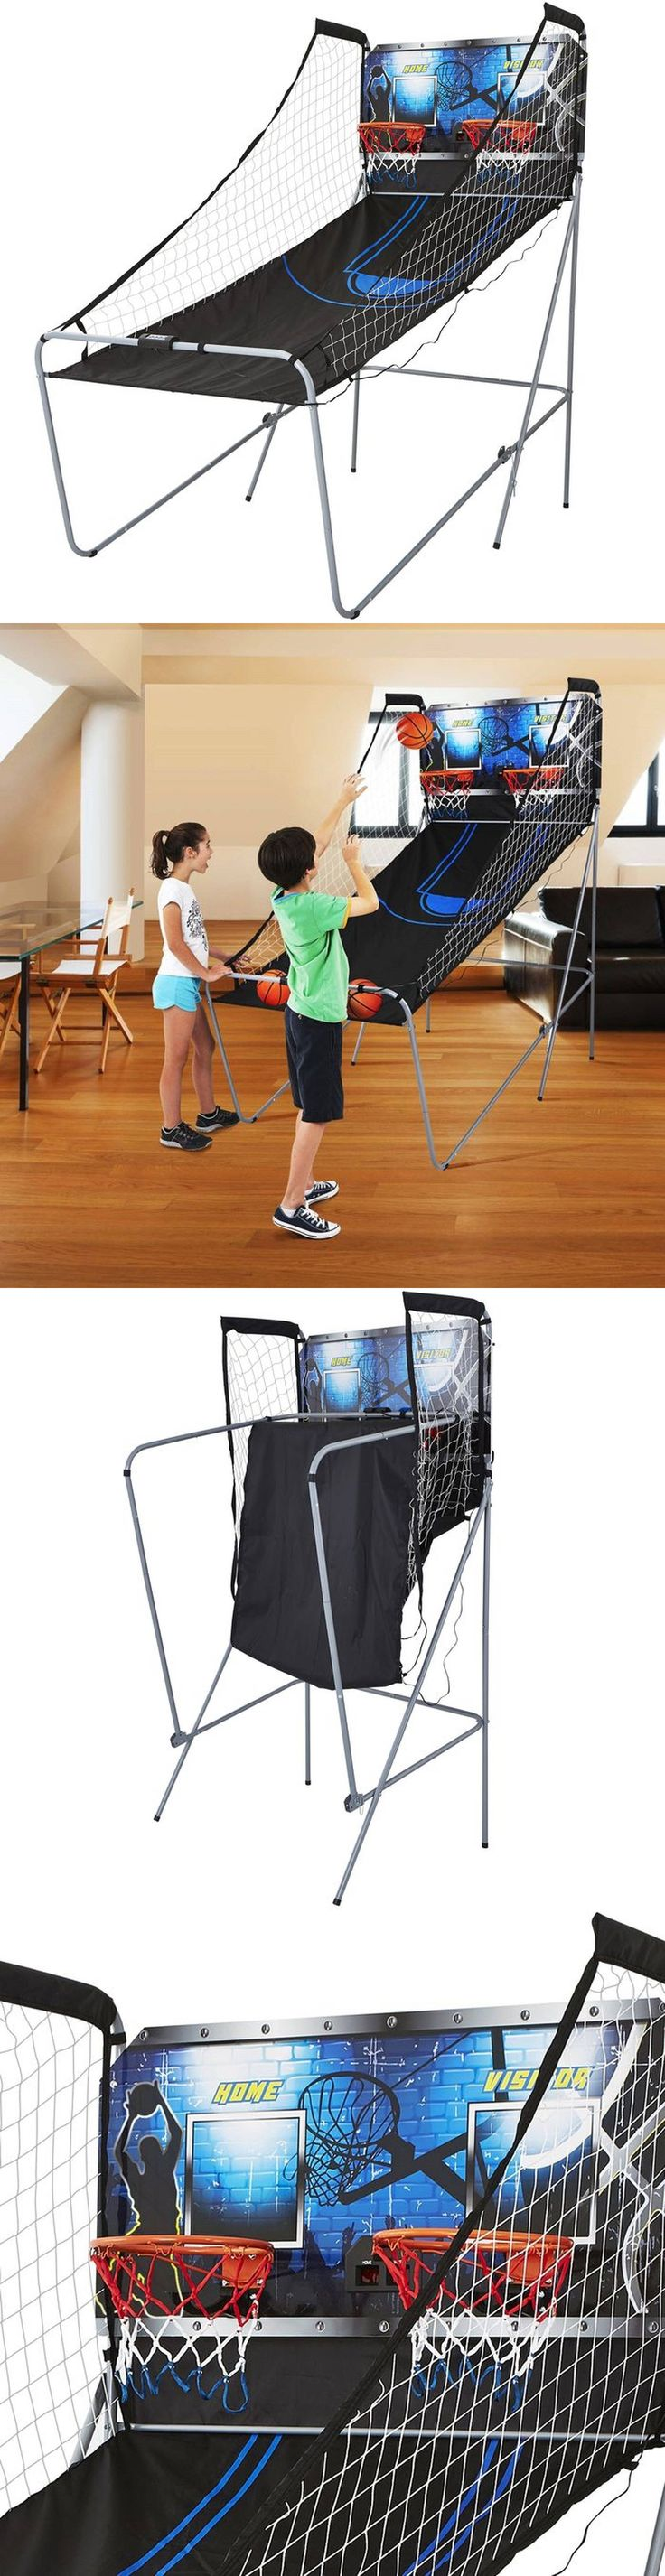 Other Indoor Games 36278: Basketball Game Indoor Electronic Arcade Game Sports 2 Player Kids Birthday Gift -> BUY IT NOW ONLY: $69.99 on eBay!